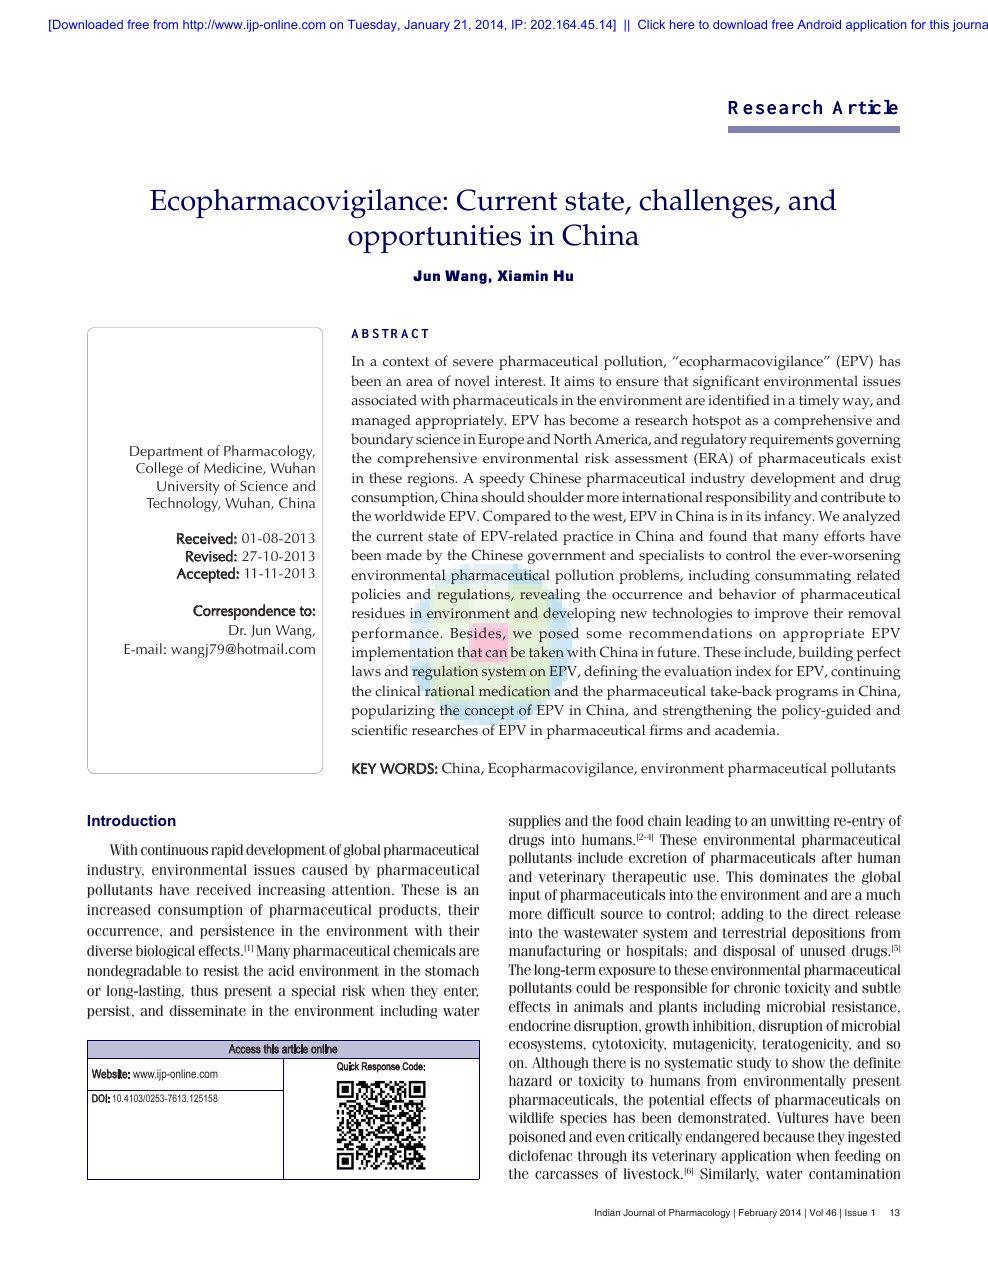 Ecopharmacovigilance: Current state, challenges, and opportunities